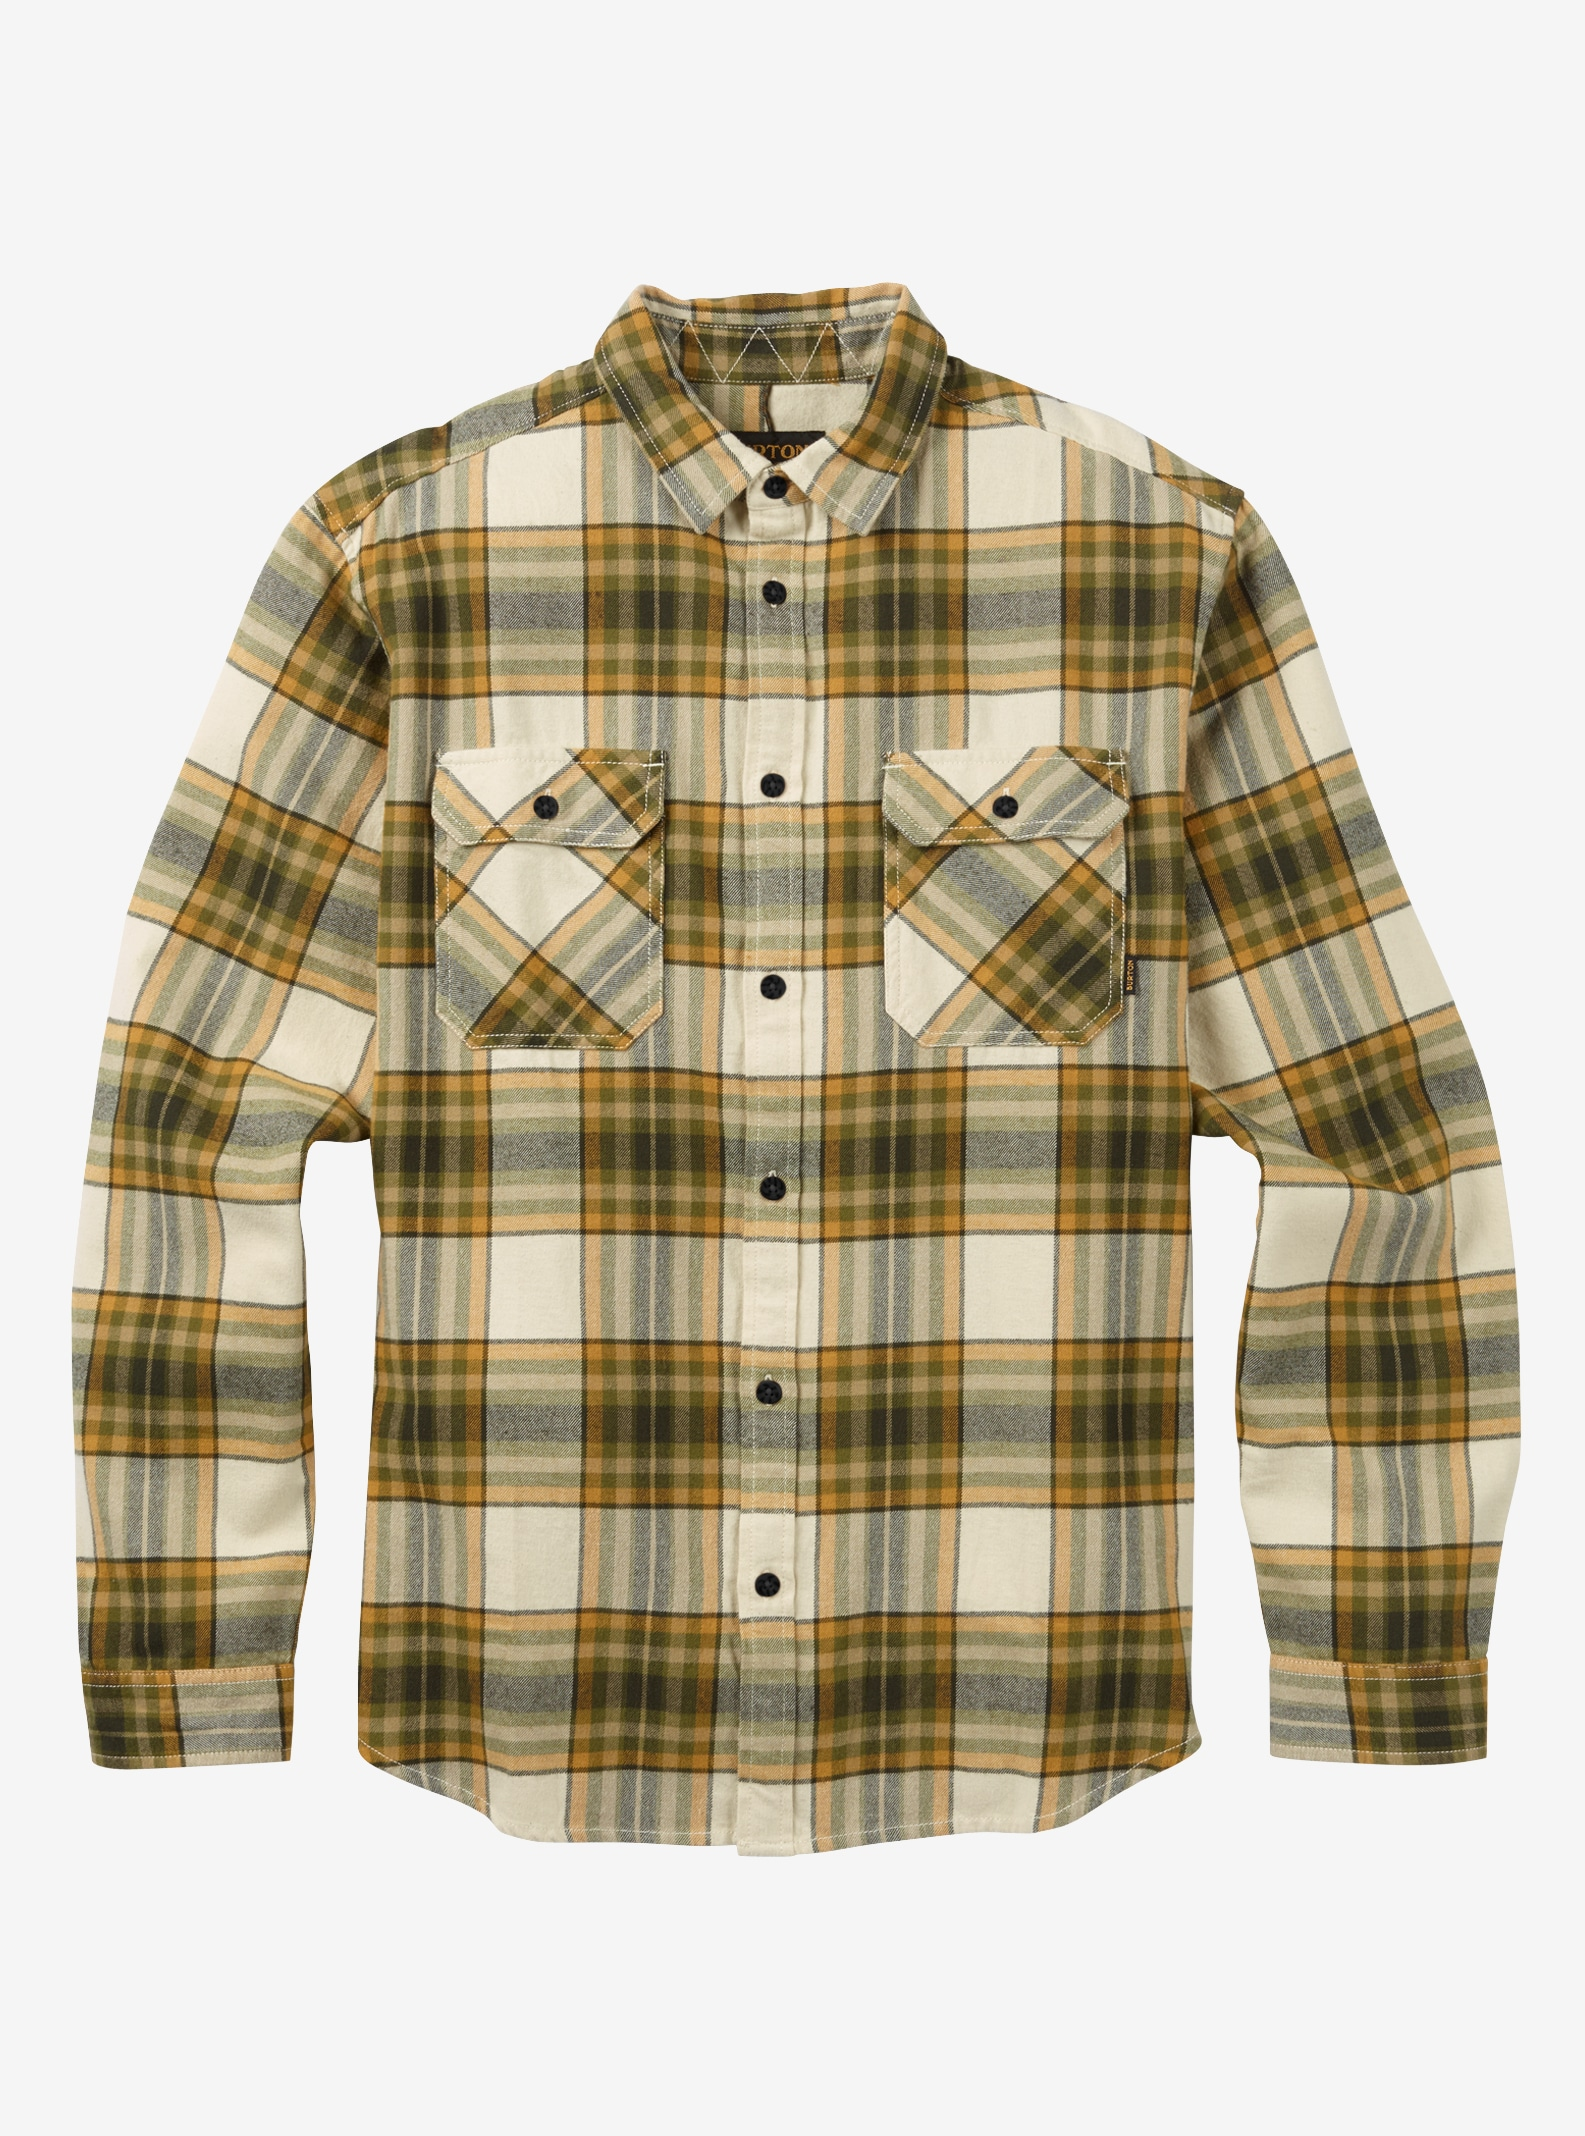 Men's Burton Brighton Flannel shown in Canvas Balsam Plaid